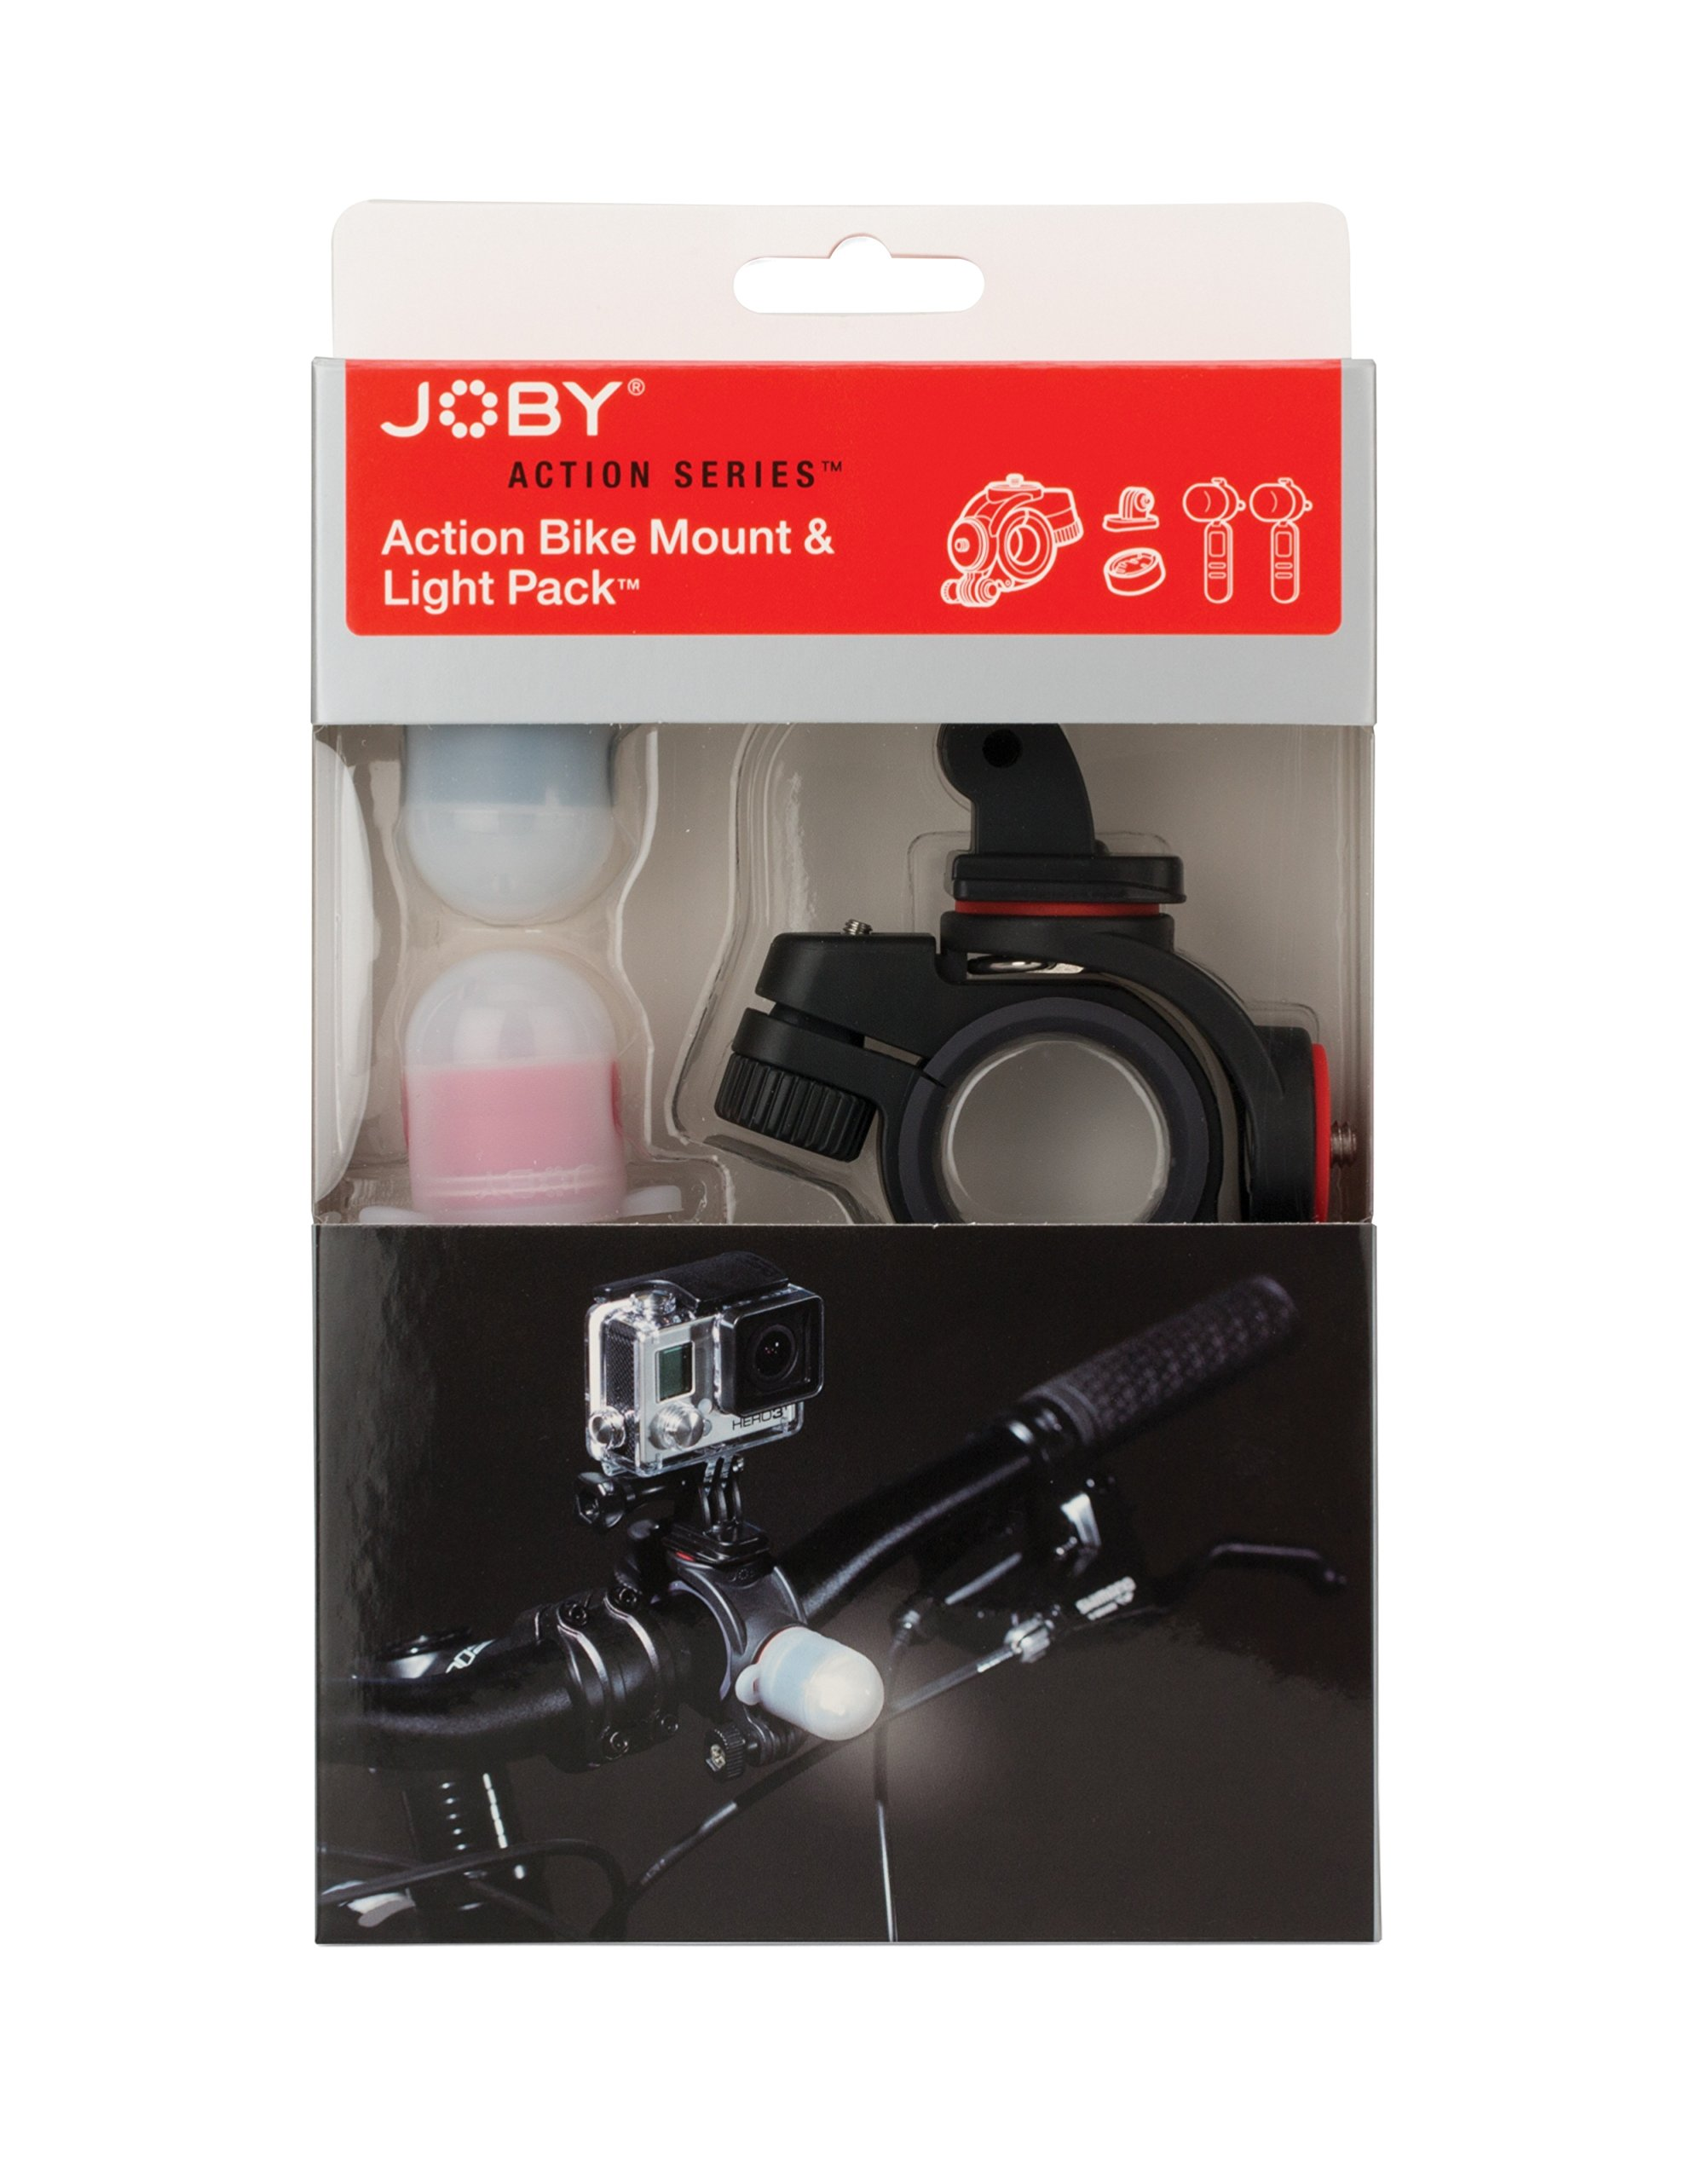 JOBY Bike Mount & Light Pack for GoPro or Other Action Video Camera